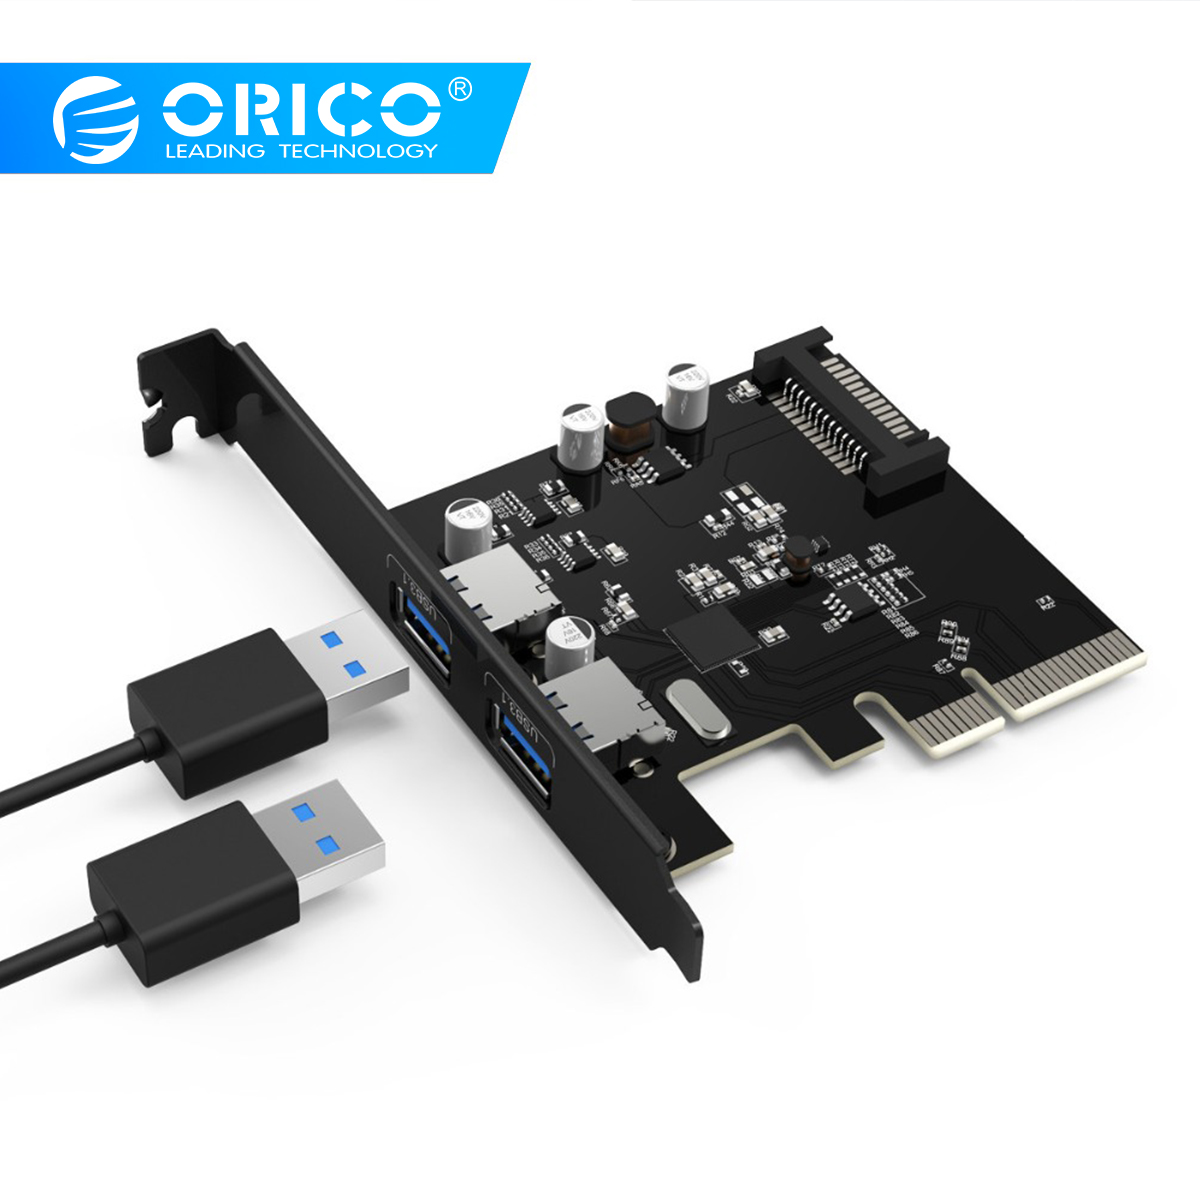 ORICO PA31-2P 2 Ports USB3.1 ordinateur de bureau carte PCI-E asme haute vitesse Express carte 10 Gbps Hot Swap 15pin alimentation-noirORICO PA31-2P 2 Ports USB3.1 ordinateur de bureau carte PCI-E asme haute vitesse Express carte 10 Gbps Hot Swap 15pin alimentation-noir